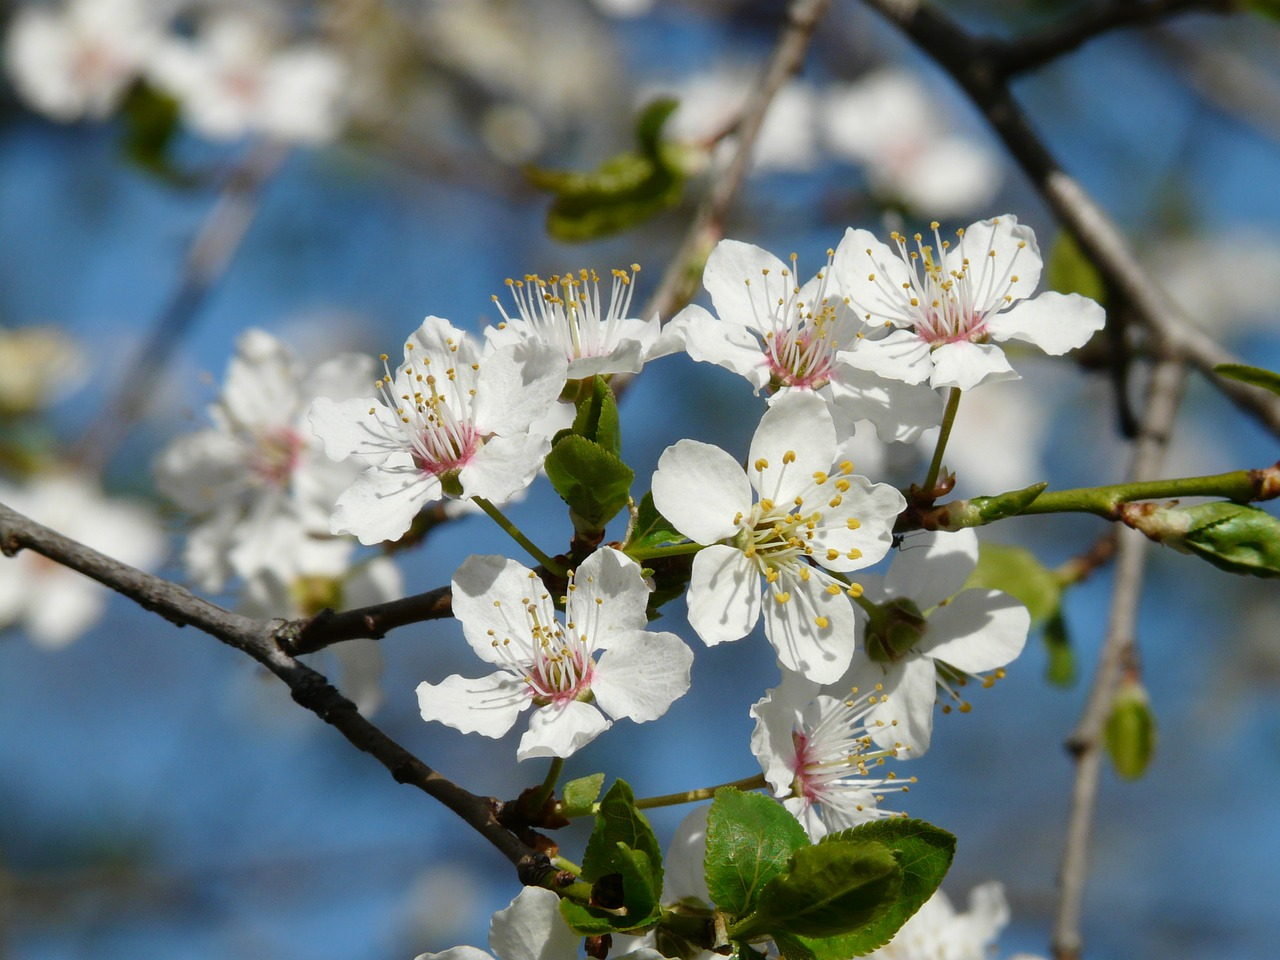 wild plum,blossom,bloom,tree,branch,american wildpflaume,prunus americana,prairie plum,nature,white,beautiful,spring,free pictures, free photos, free images, royalty free, free illustrations, public domain